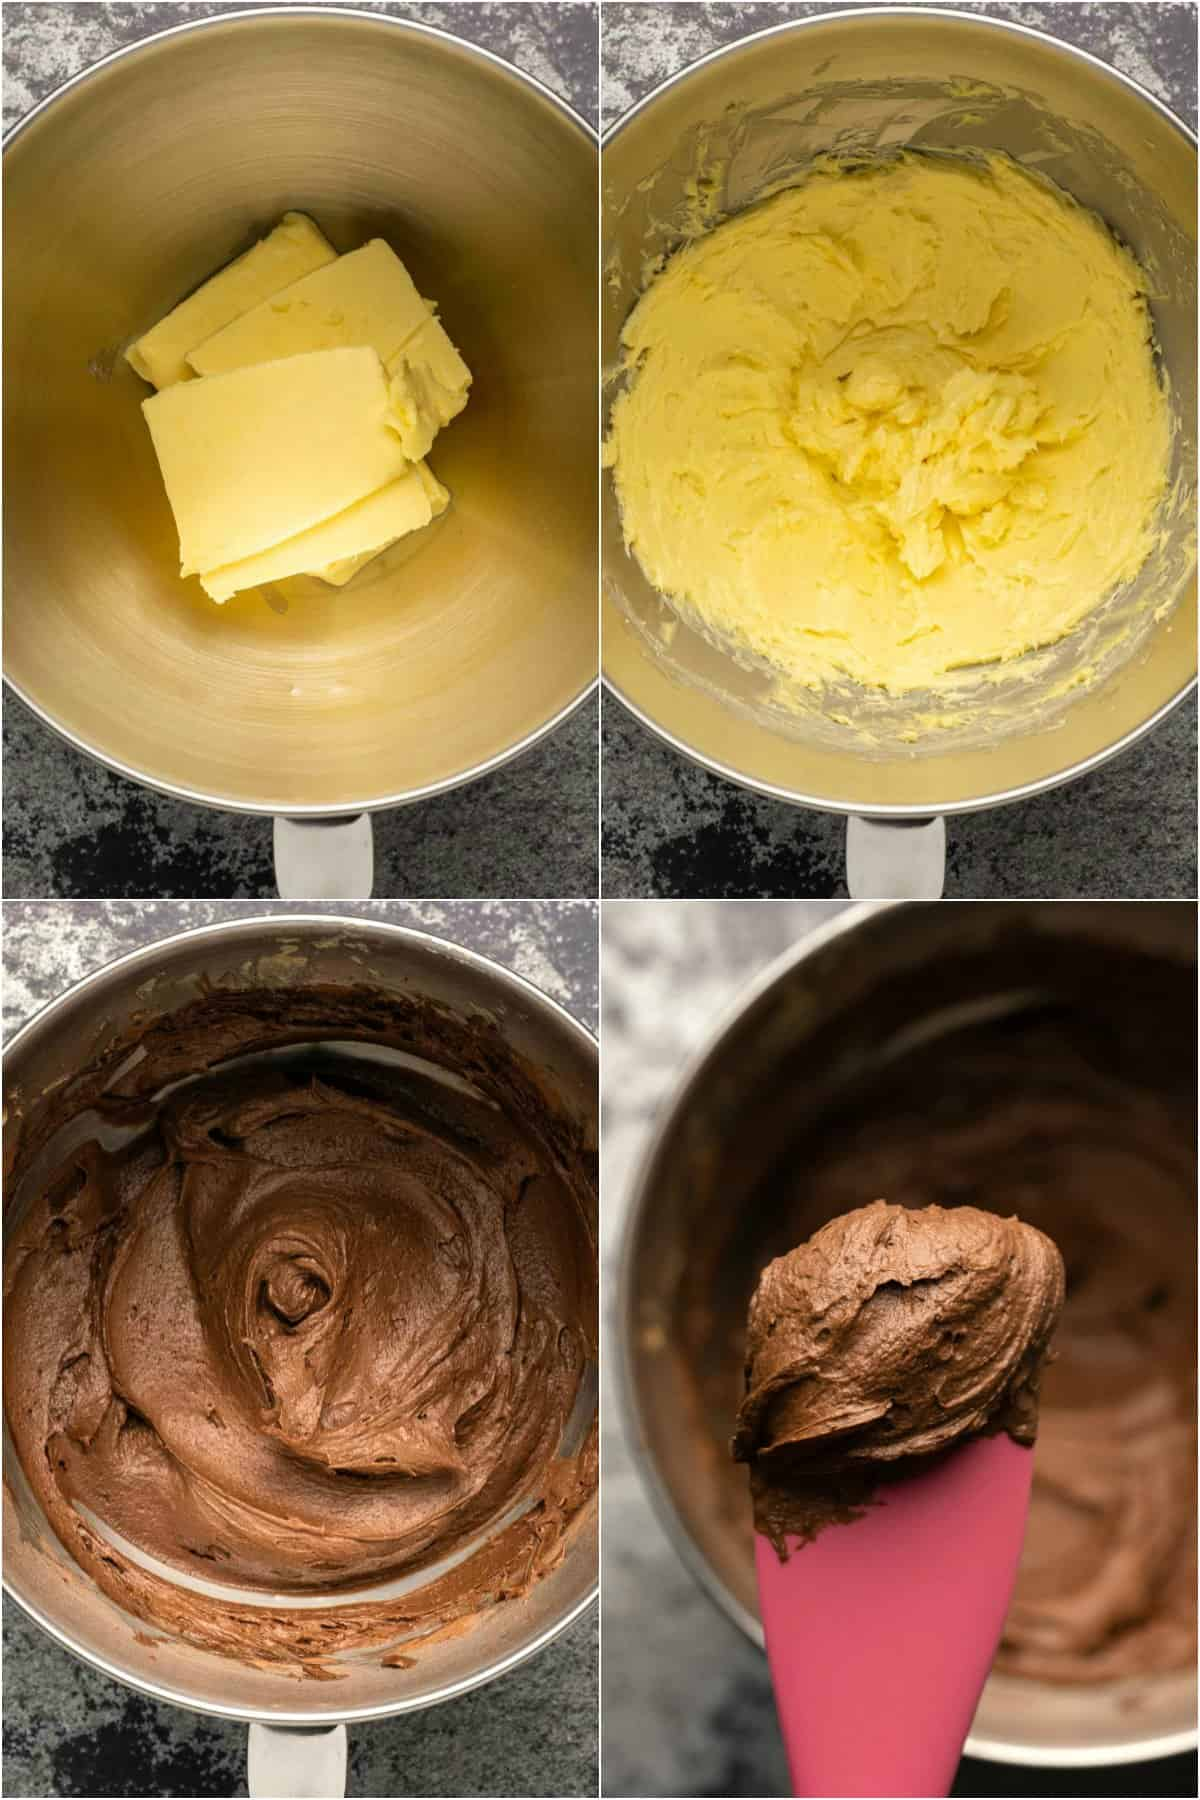 Step by step process photo collage of making chocolate buttercream frosting.